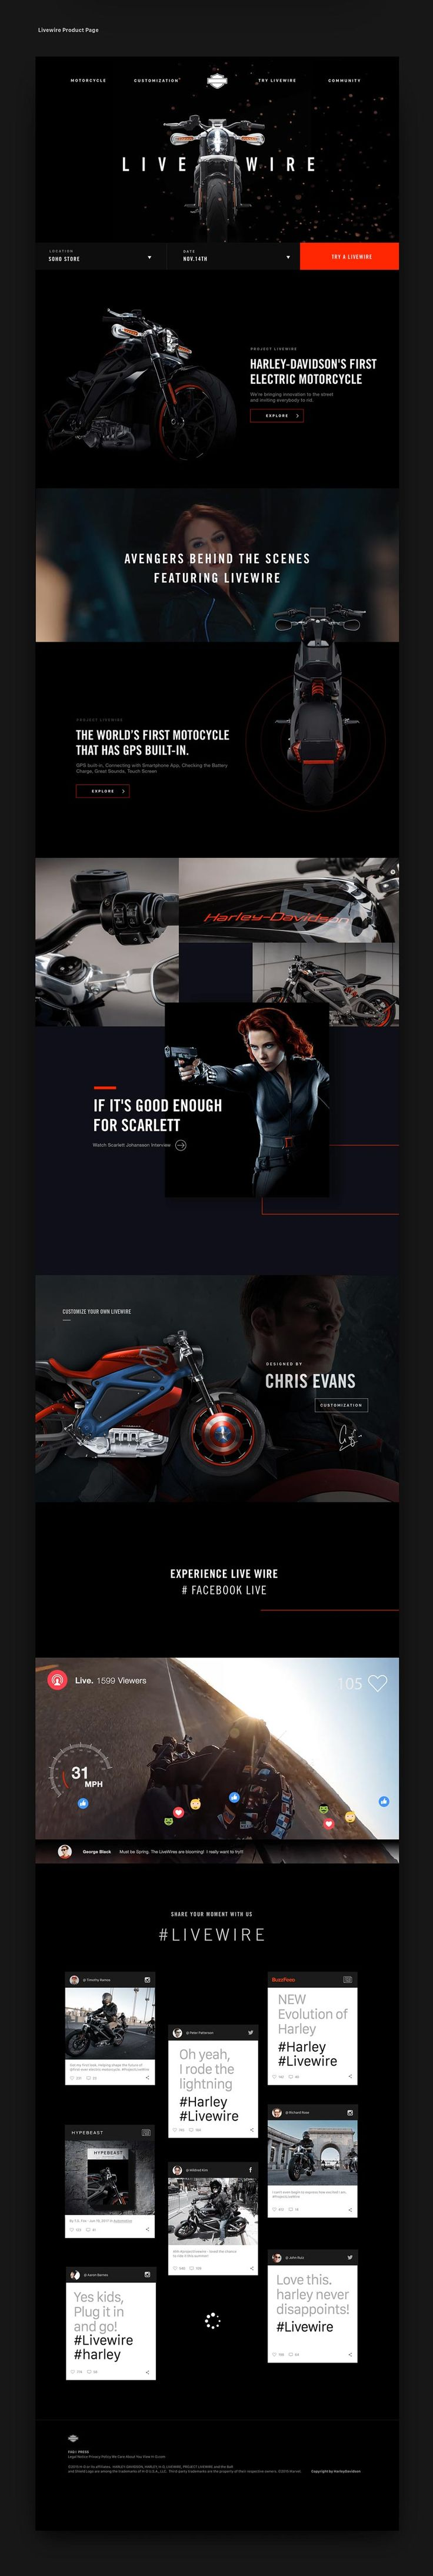 Harley Davidson Motorcycle Website - Behance #ui #ux #userexperience #website #webdesign #design